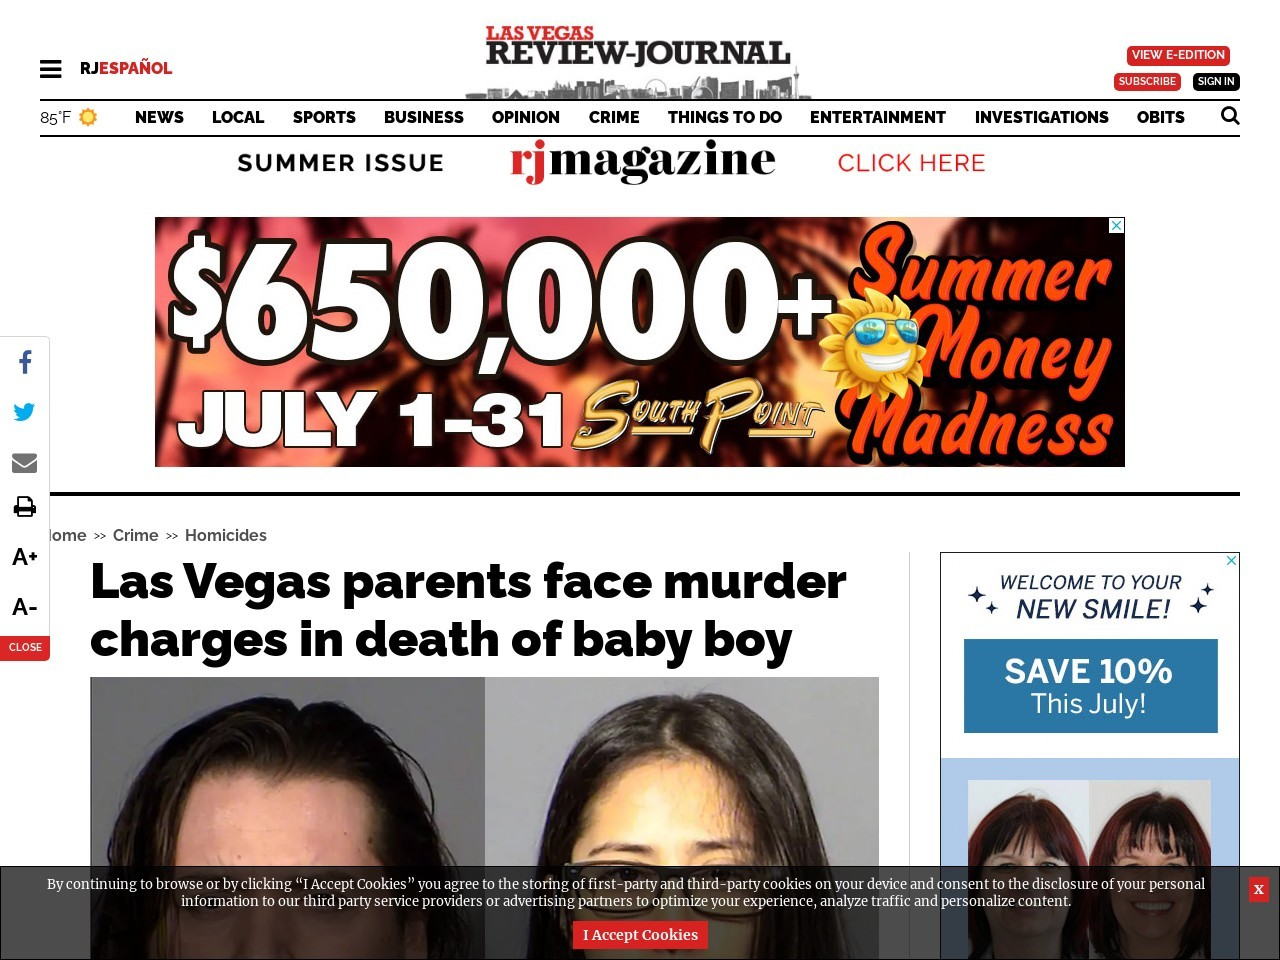 Las Vegas parents face murder charges in death of baby boy